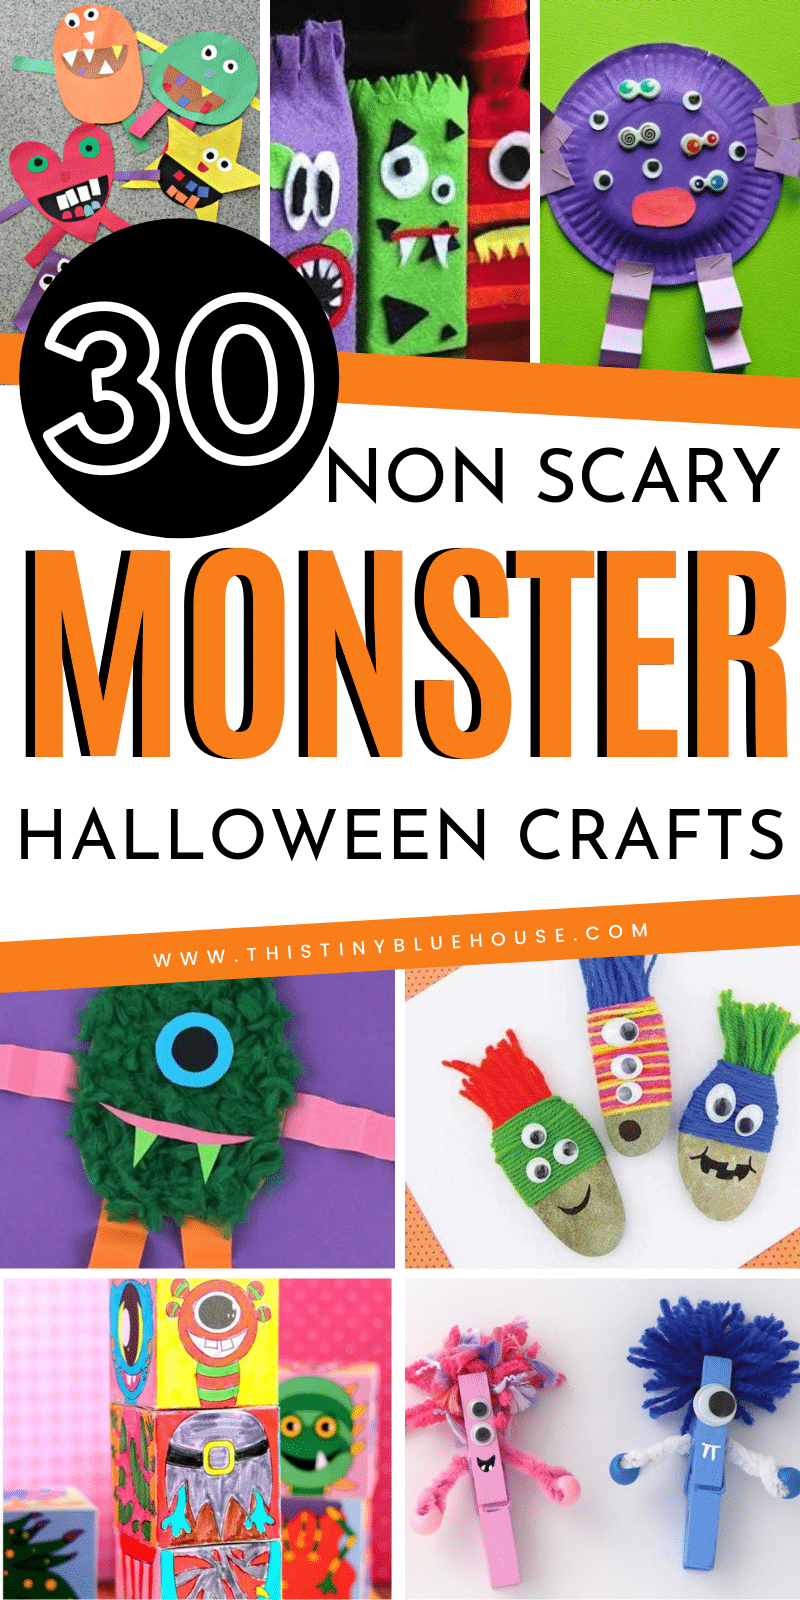 here are 30 fun non scary monster Halloween crafts that kiddos just love. Easy, cute and fun these crafts are a great way to get kiddos super excited about Halloween. #halloweencrafts #nonscaryhalloweencrafts #monstercraftsforkids #monstercrafts #monstercraftsforhalloween #nonscaryhalloweenmonstercrafts